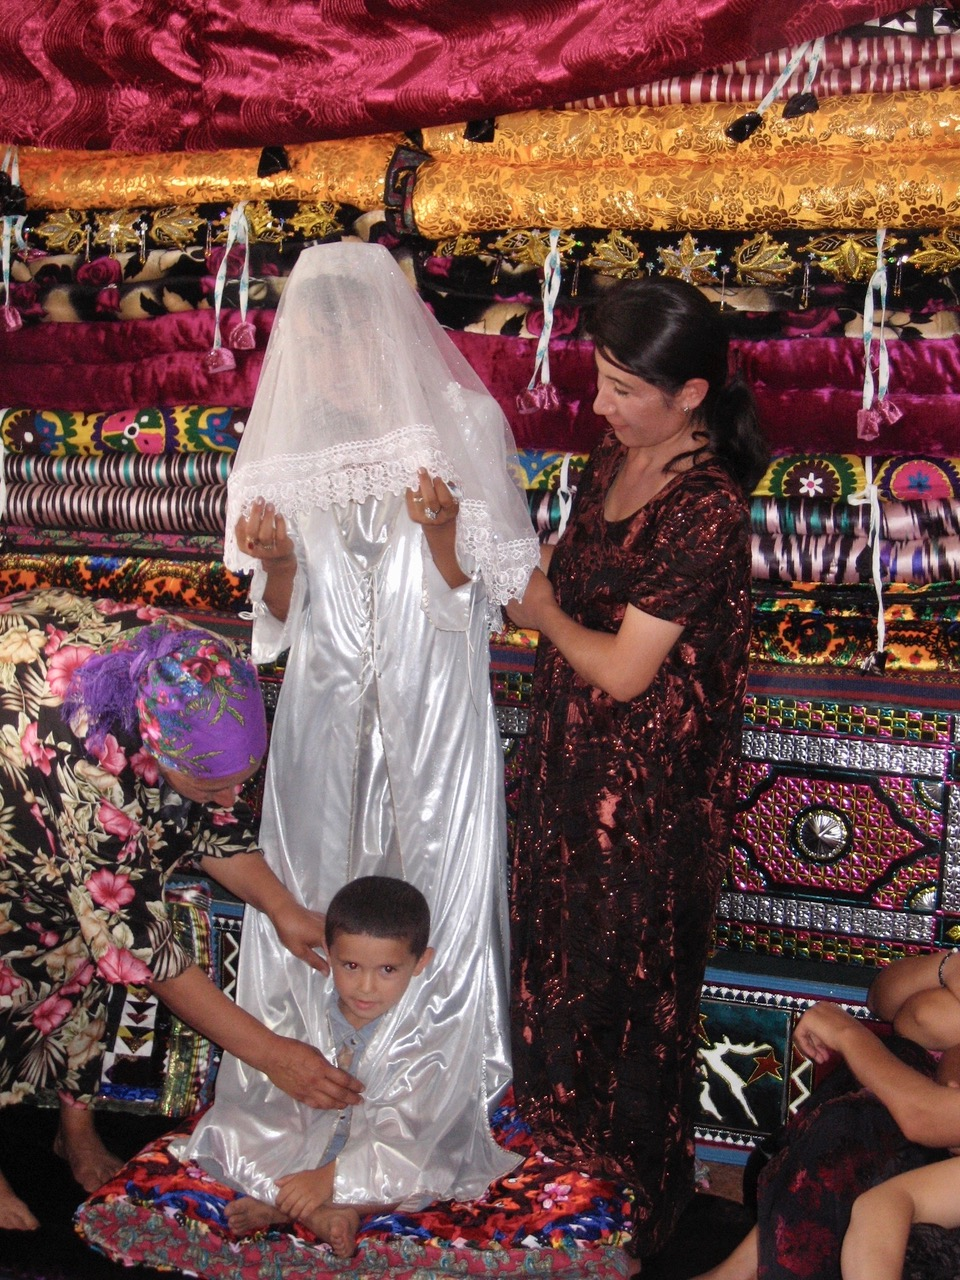 Boyson, Uzbekistan. Wedding, dowry quits and mattresses in background